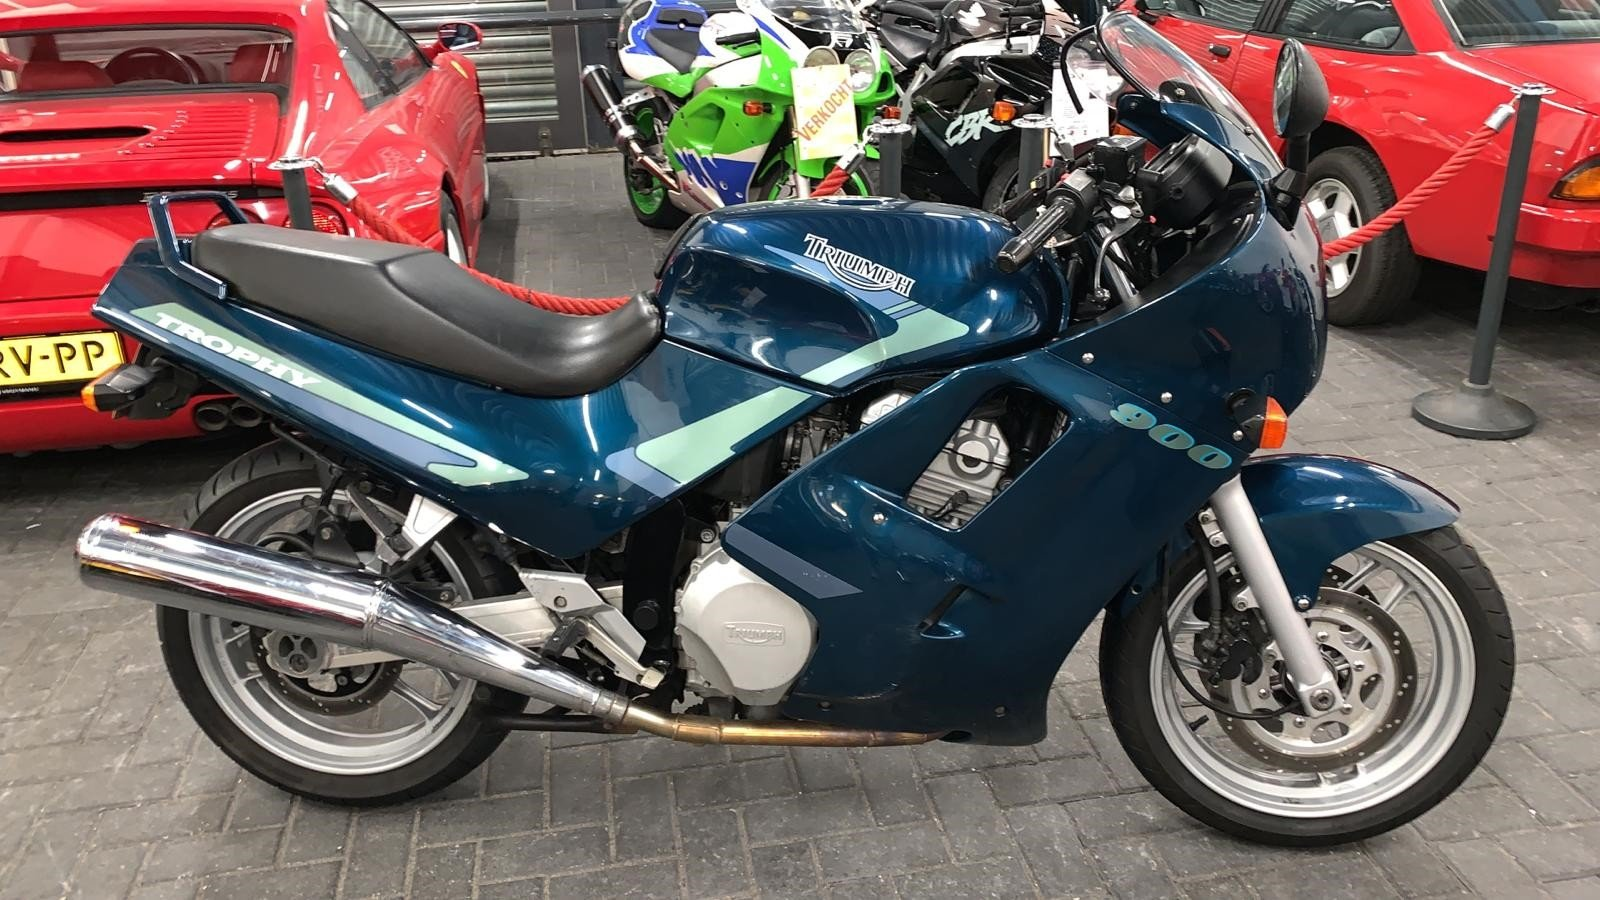 1992 Triumph trophy 900 For Sale (picture 1 of 6)